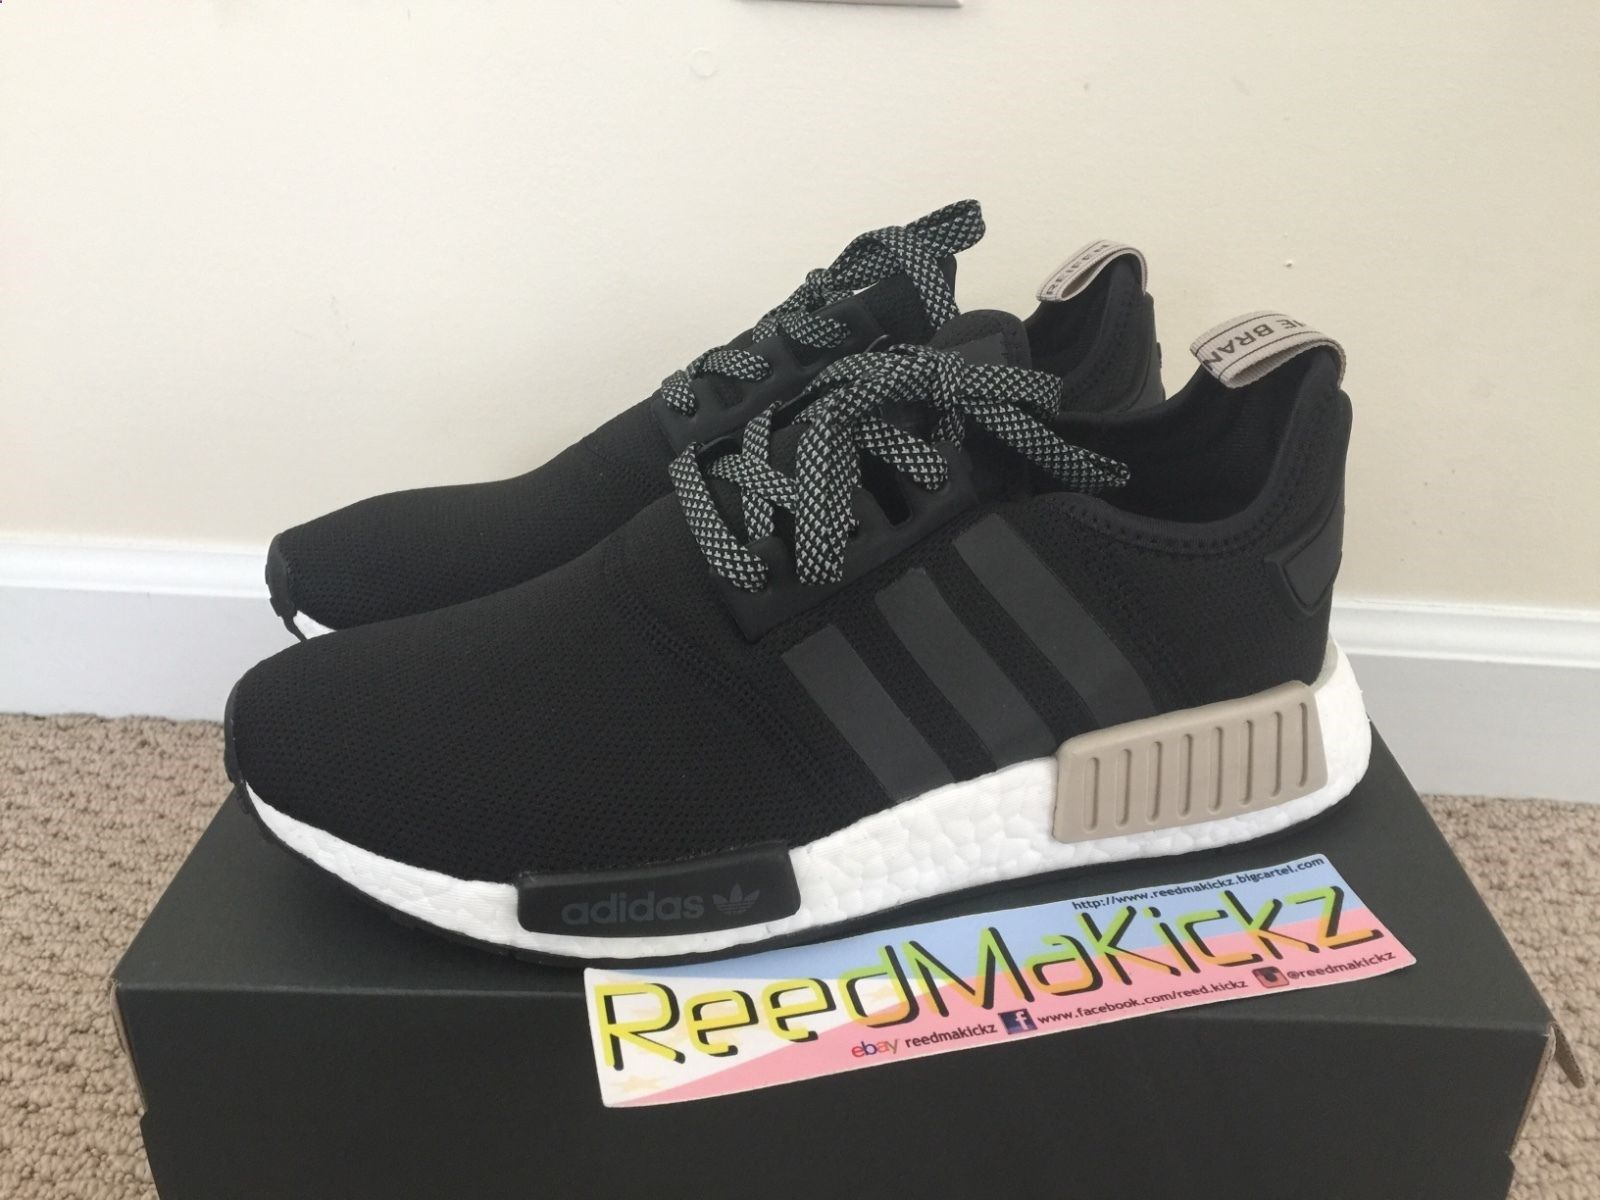 655d878c9 Adidas NMD R1 Black White Tan Cream S76847 Mens sizes